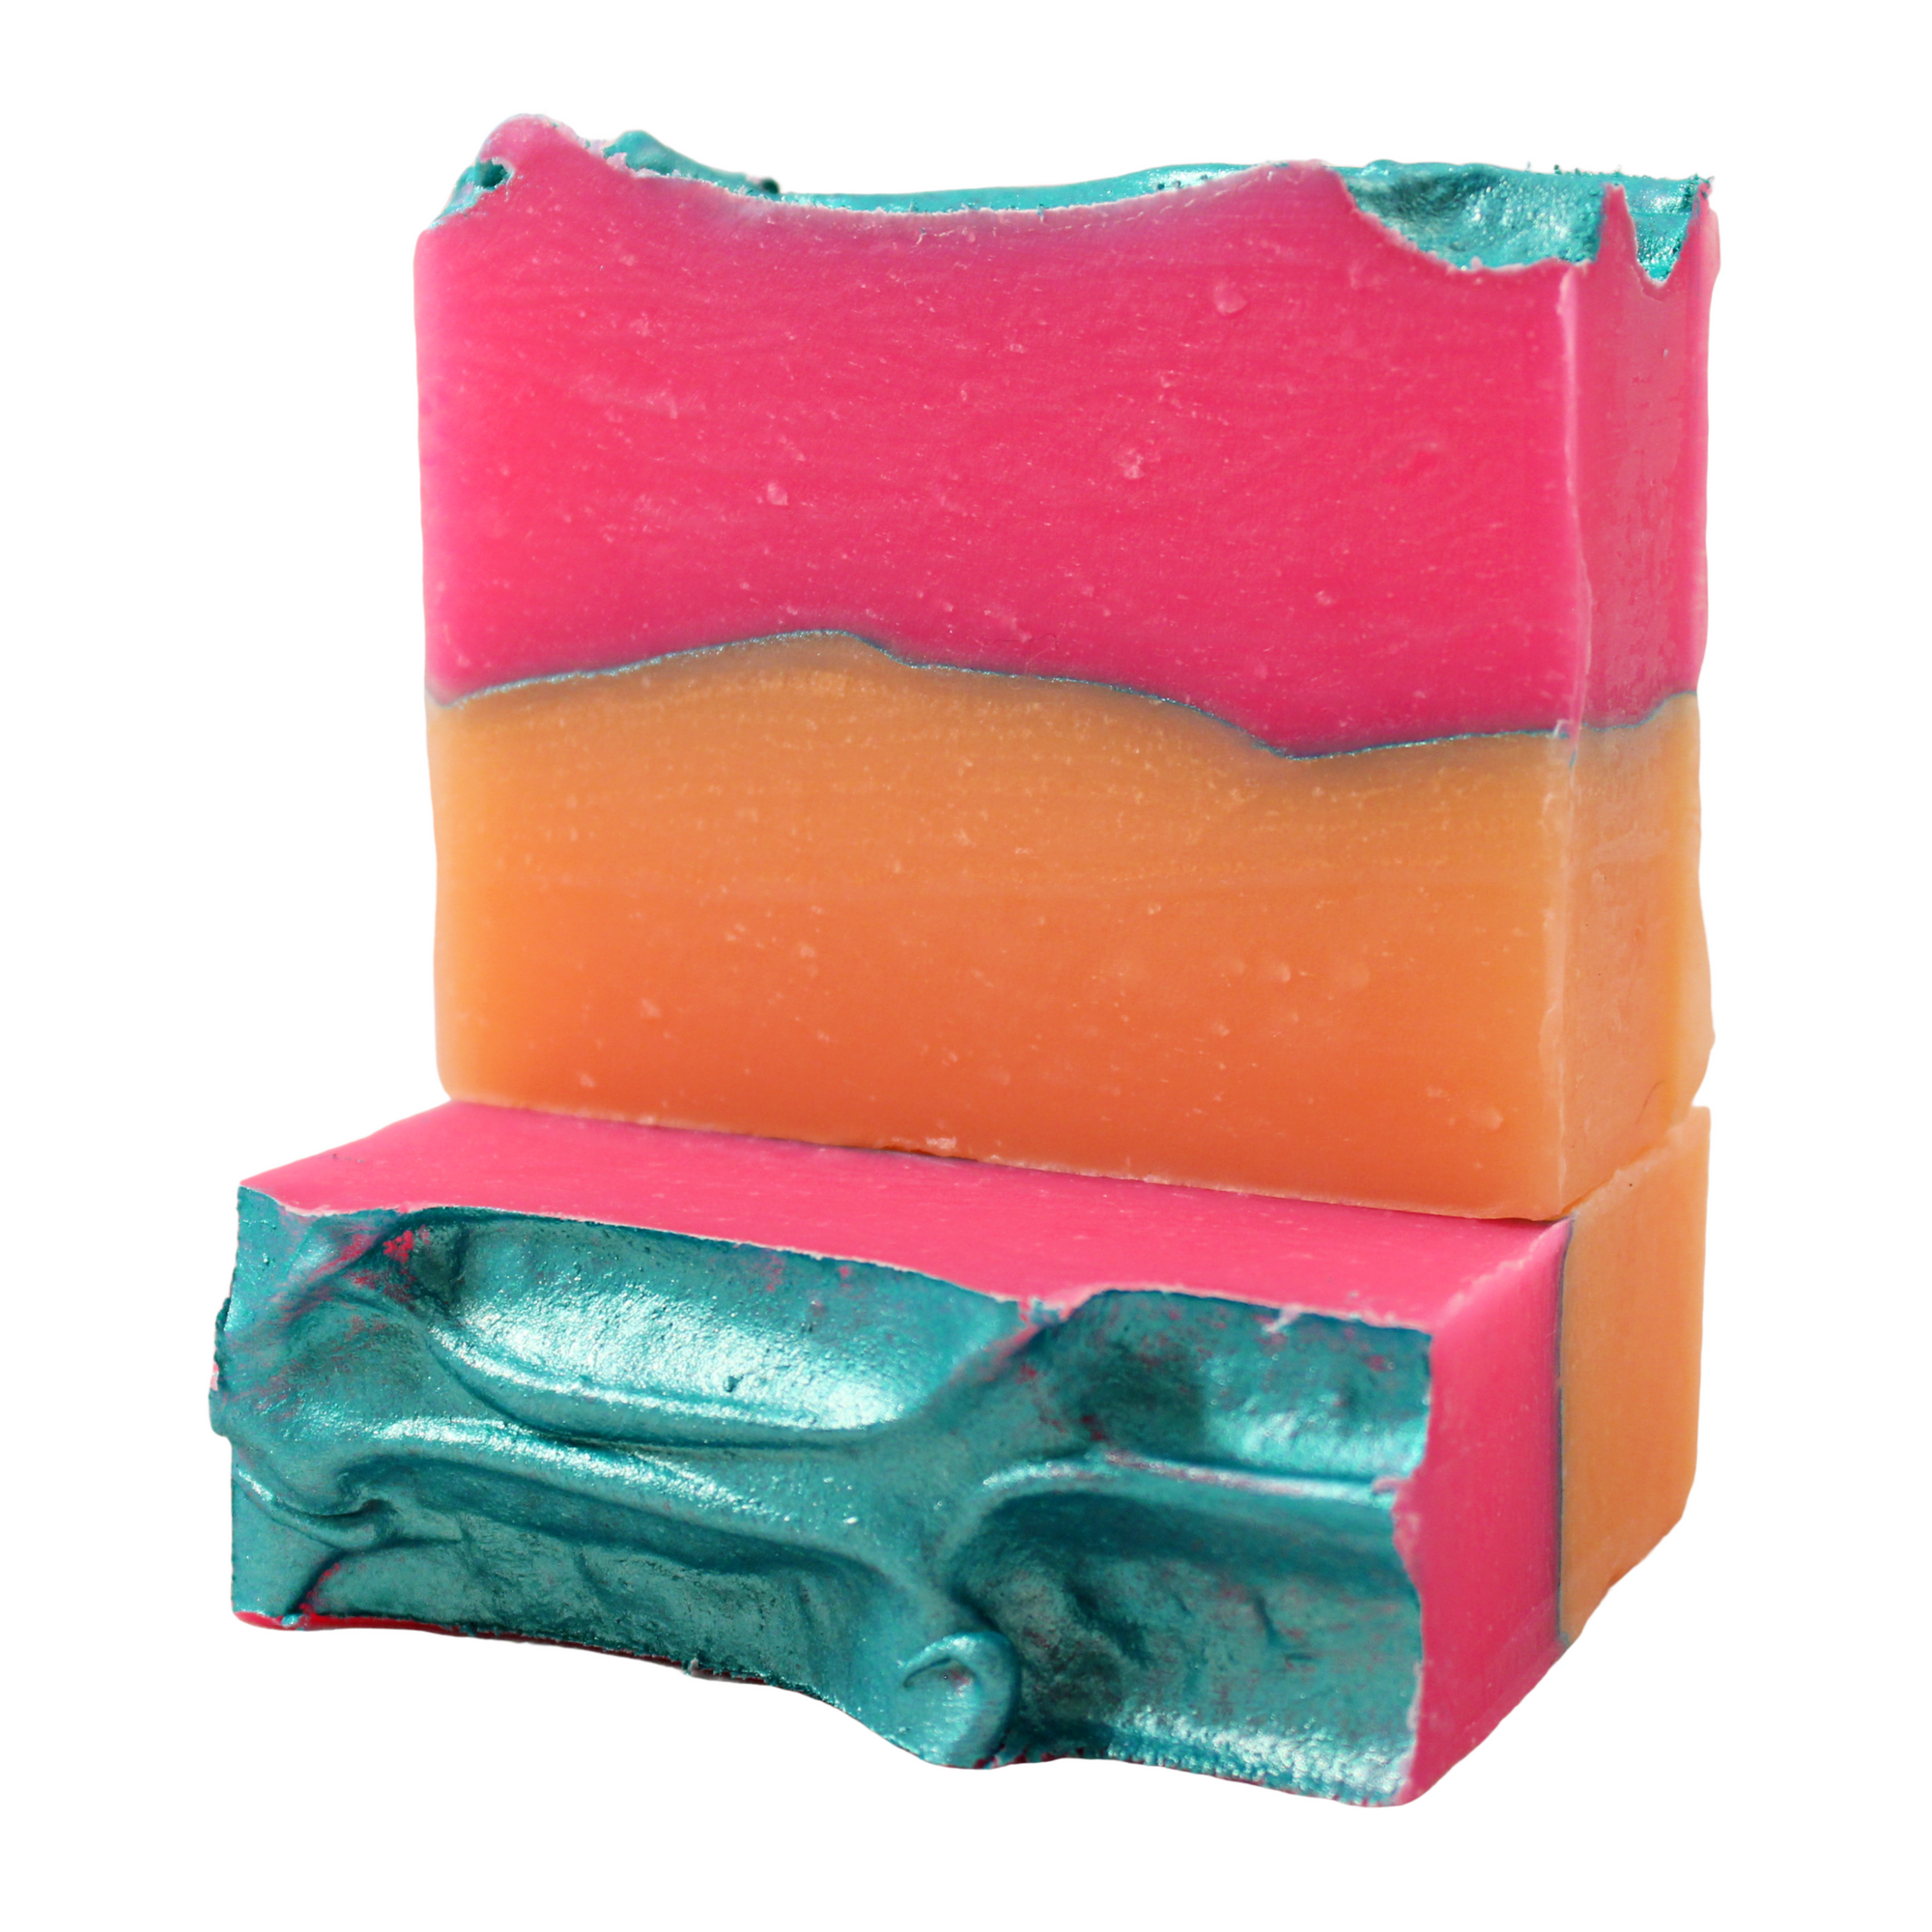 Solstice Soap | pear, raspberry, boysenberry + blackberry - Canard Labs  handcrafted, all natural bar soap made in Oregon. Bar soaps and bath body products made with quality ingredients.